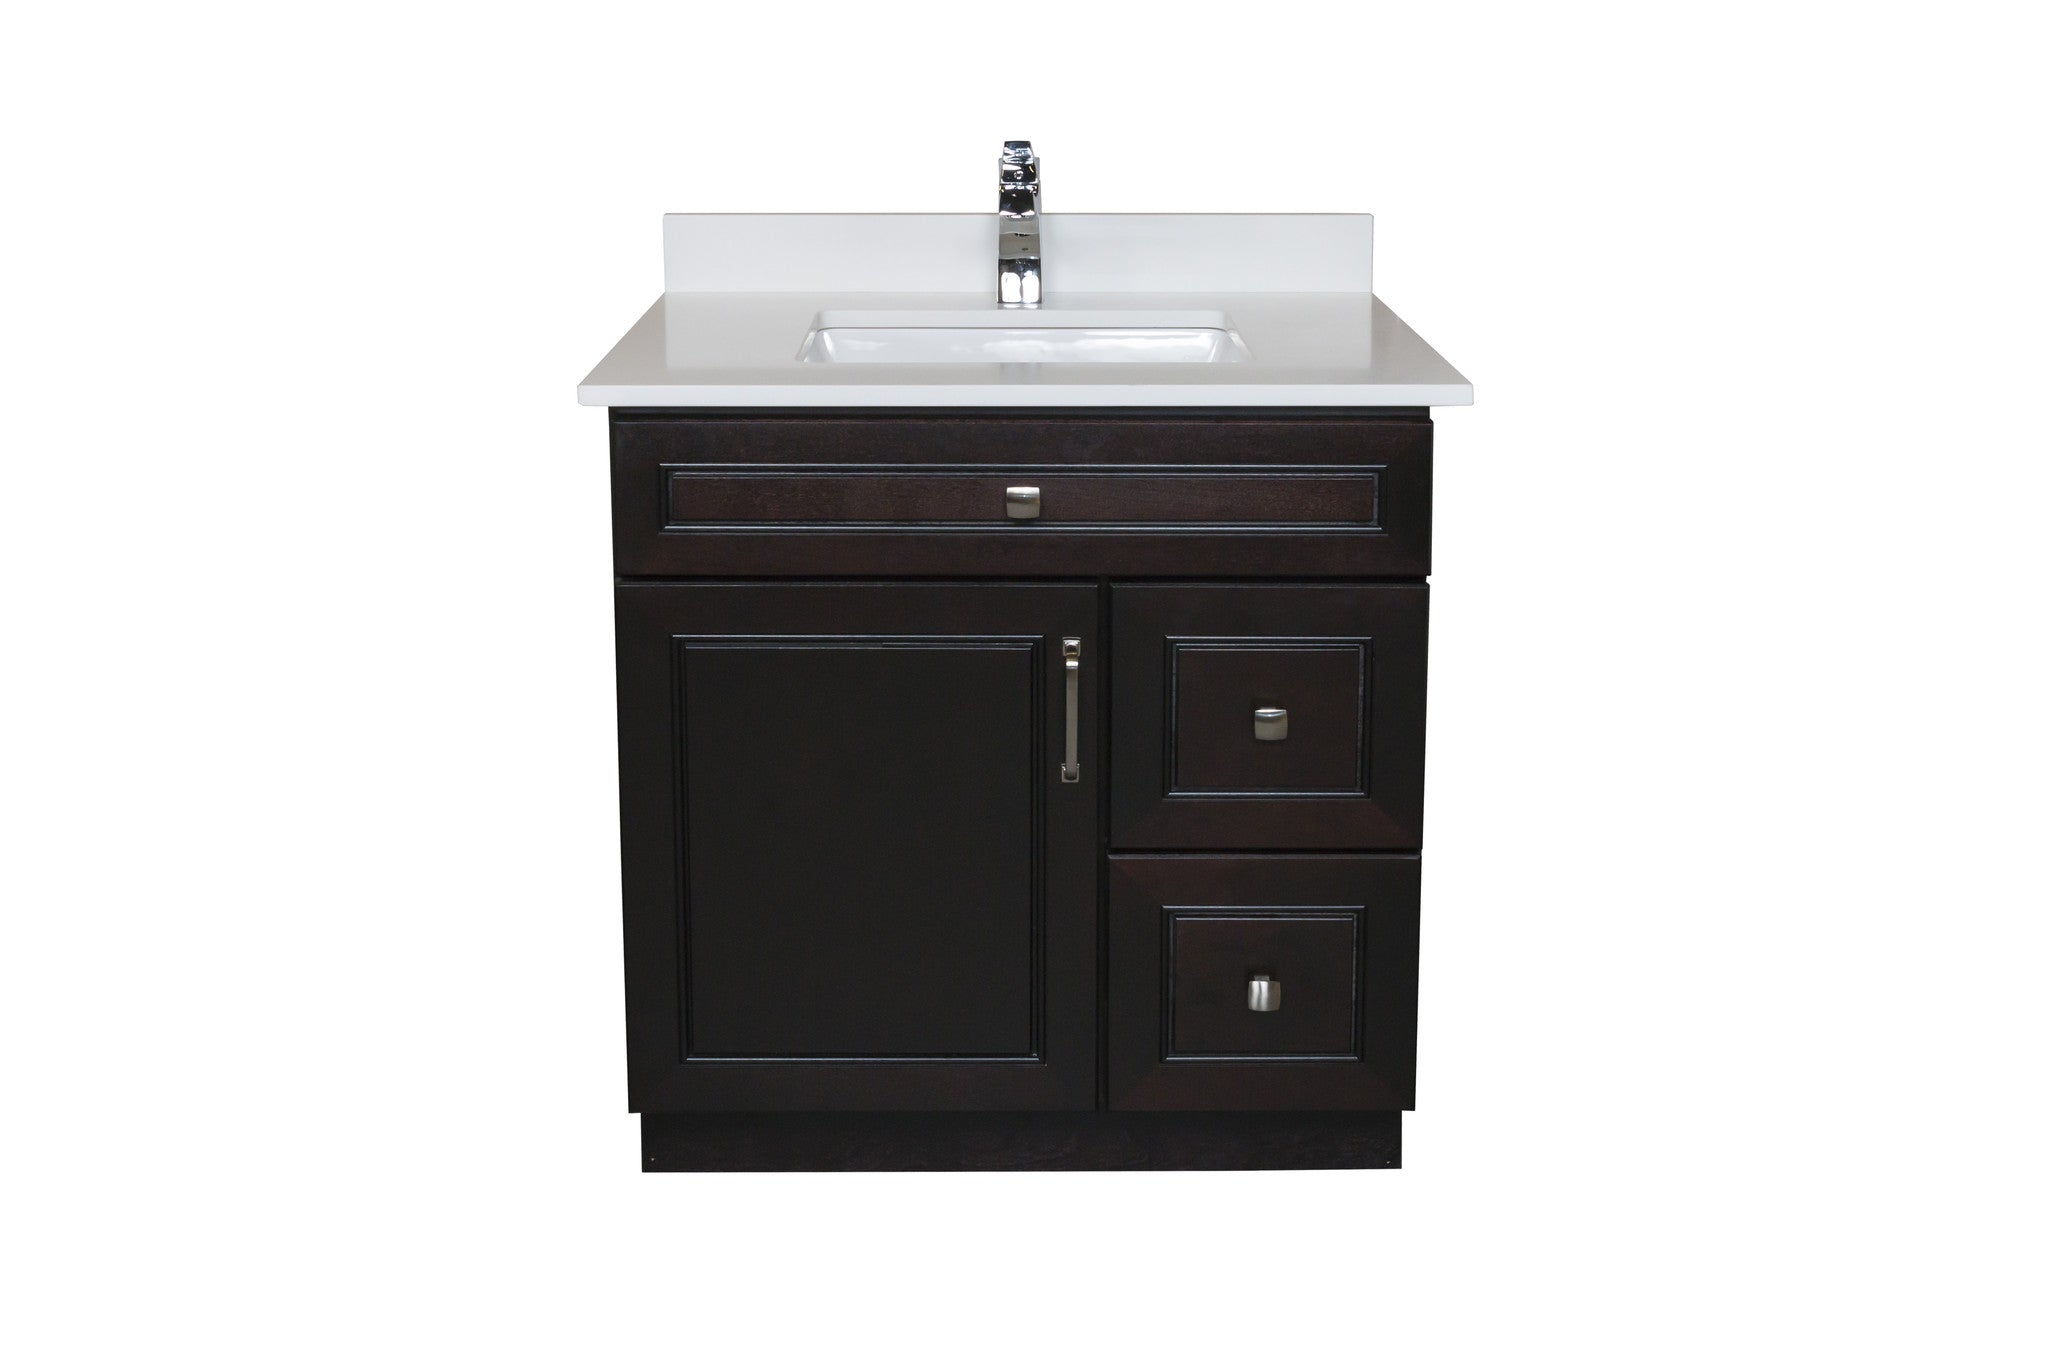 30 ̎ Maple Wood Bathroom Vanity in Espresso - Combo – Broadway Vanities